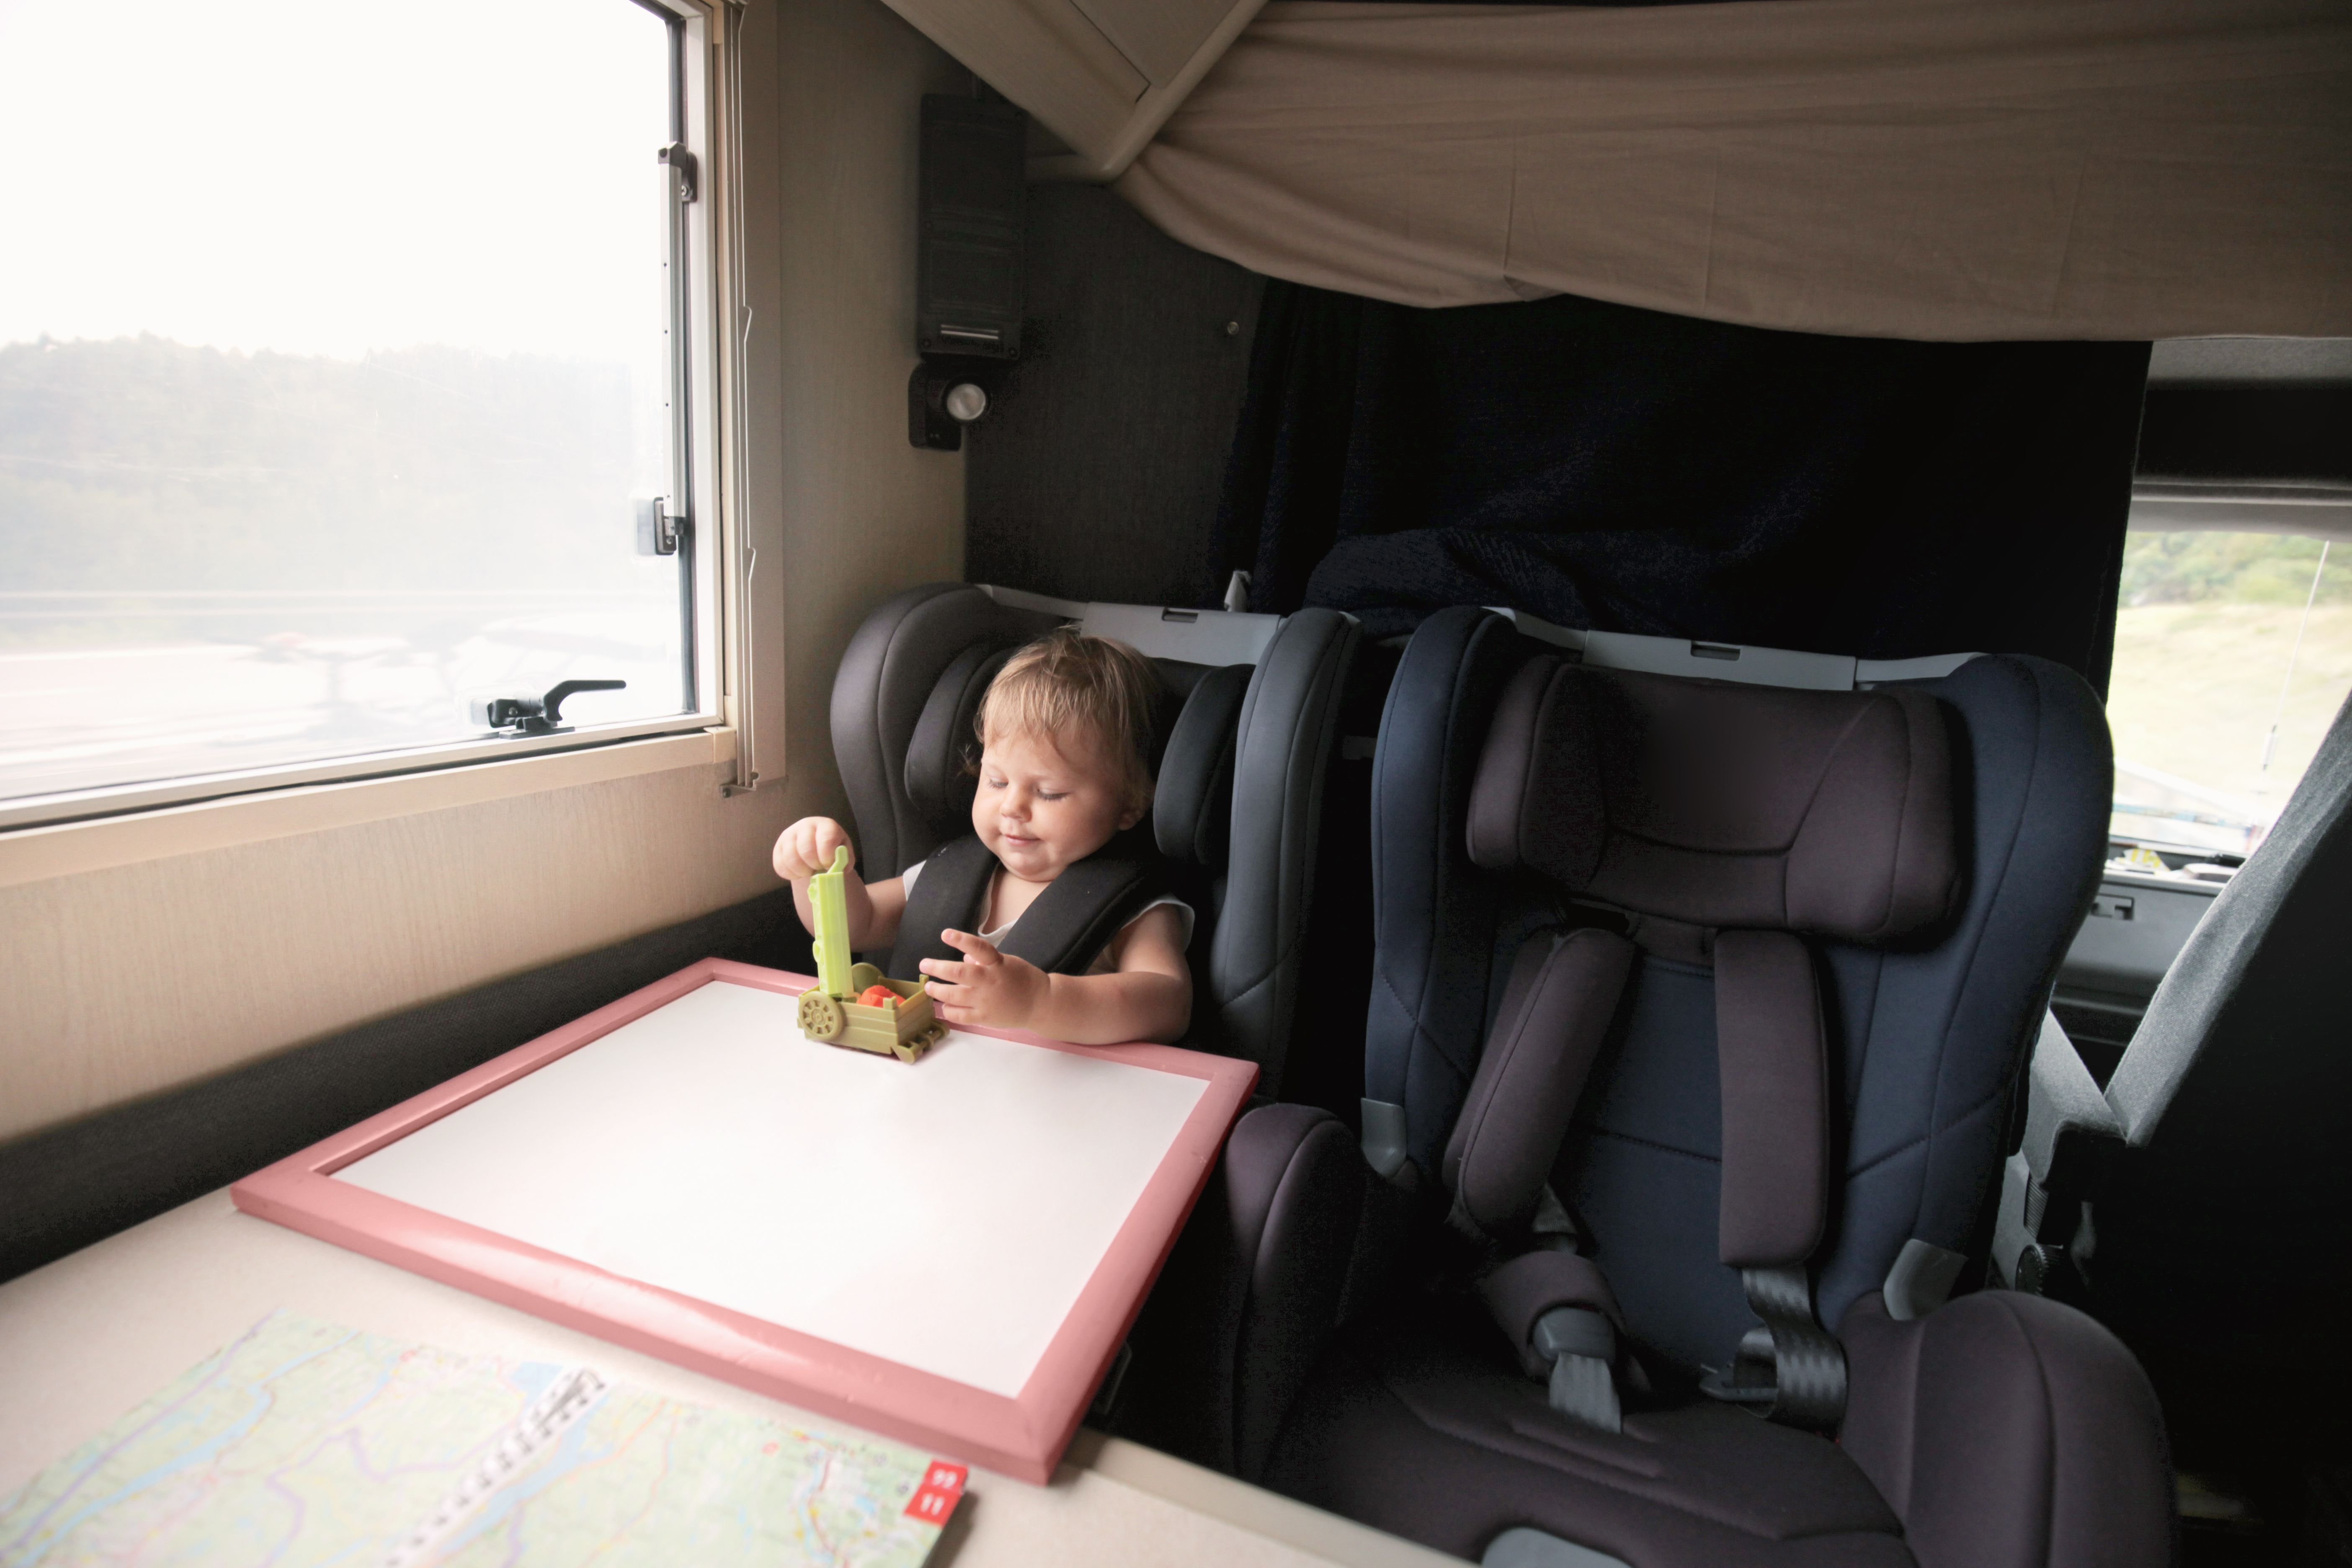 Baby in car seat playing during journey in campervan